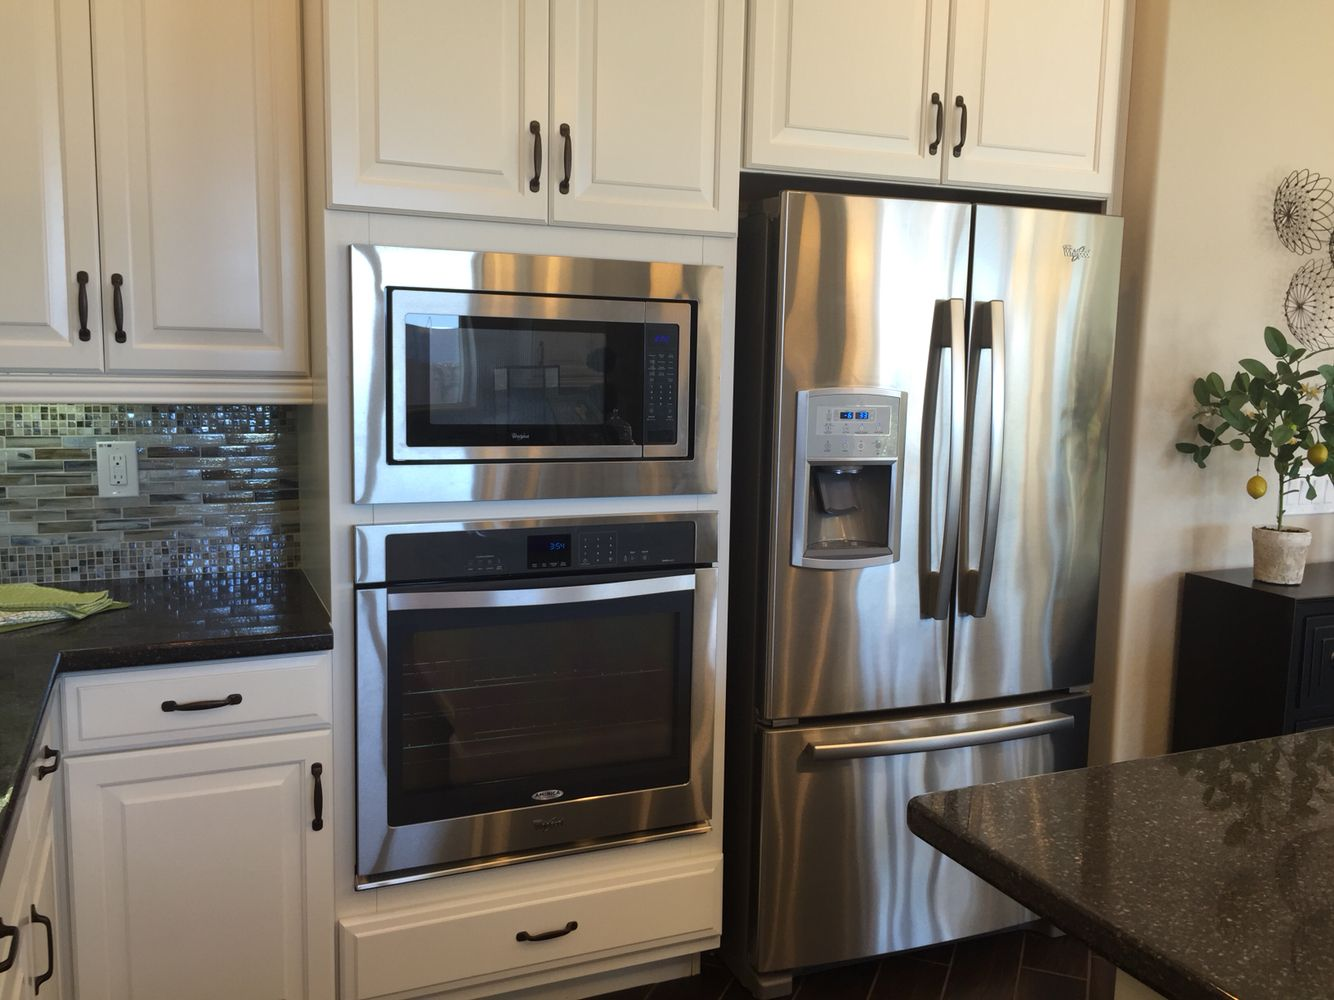 New homes kitchen decor white cabinets stainless steel for Chocolate kitchen cabinets with stainless steel appliances